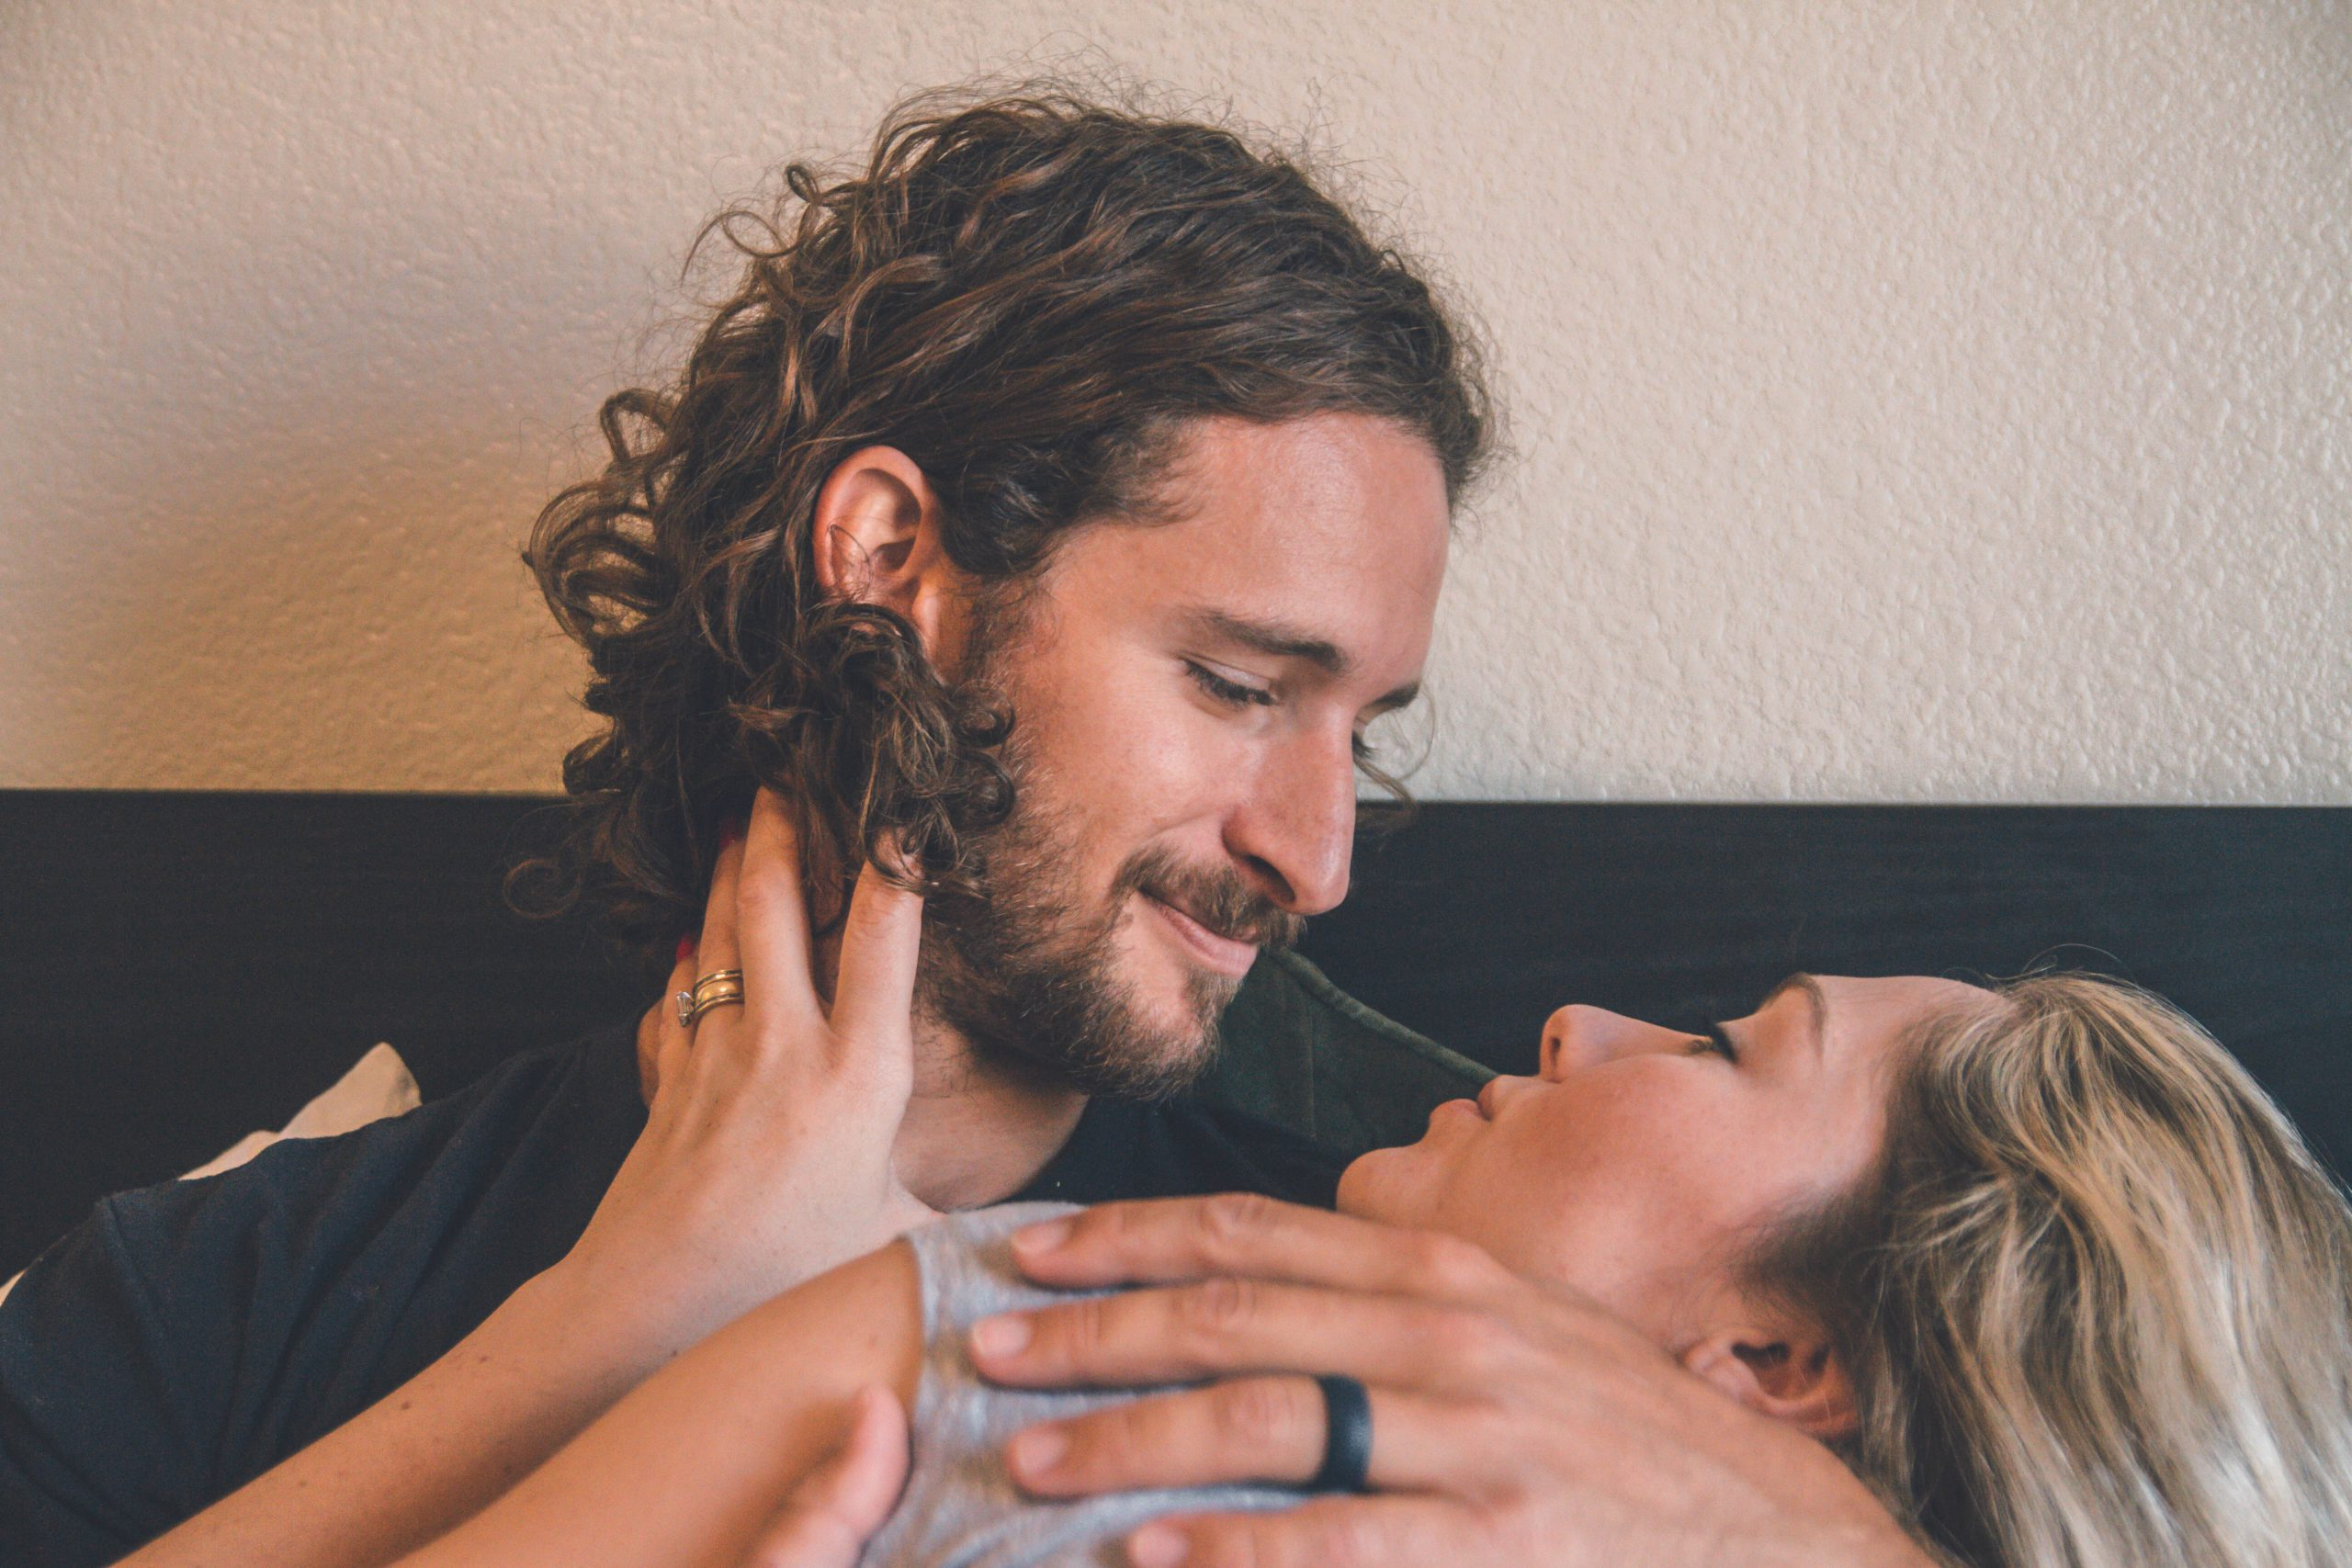 How can you have a fulfilling experience with sexual partners?